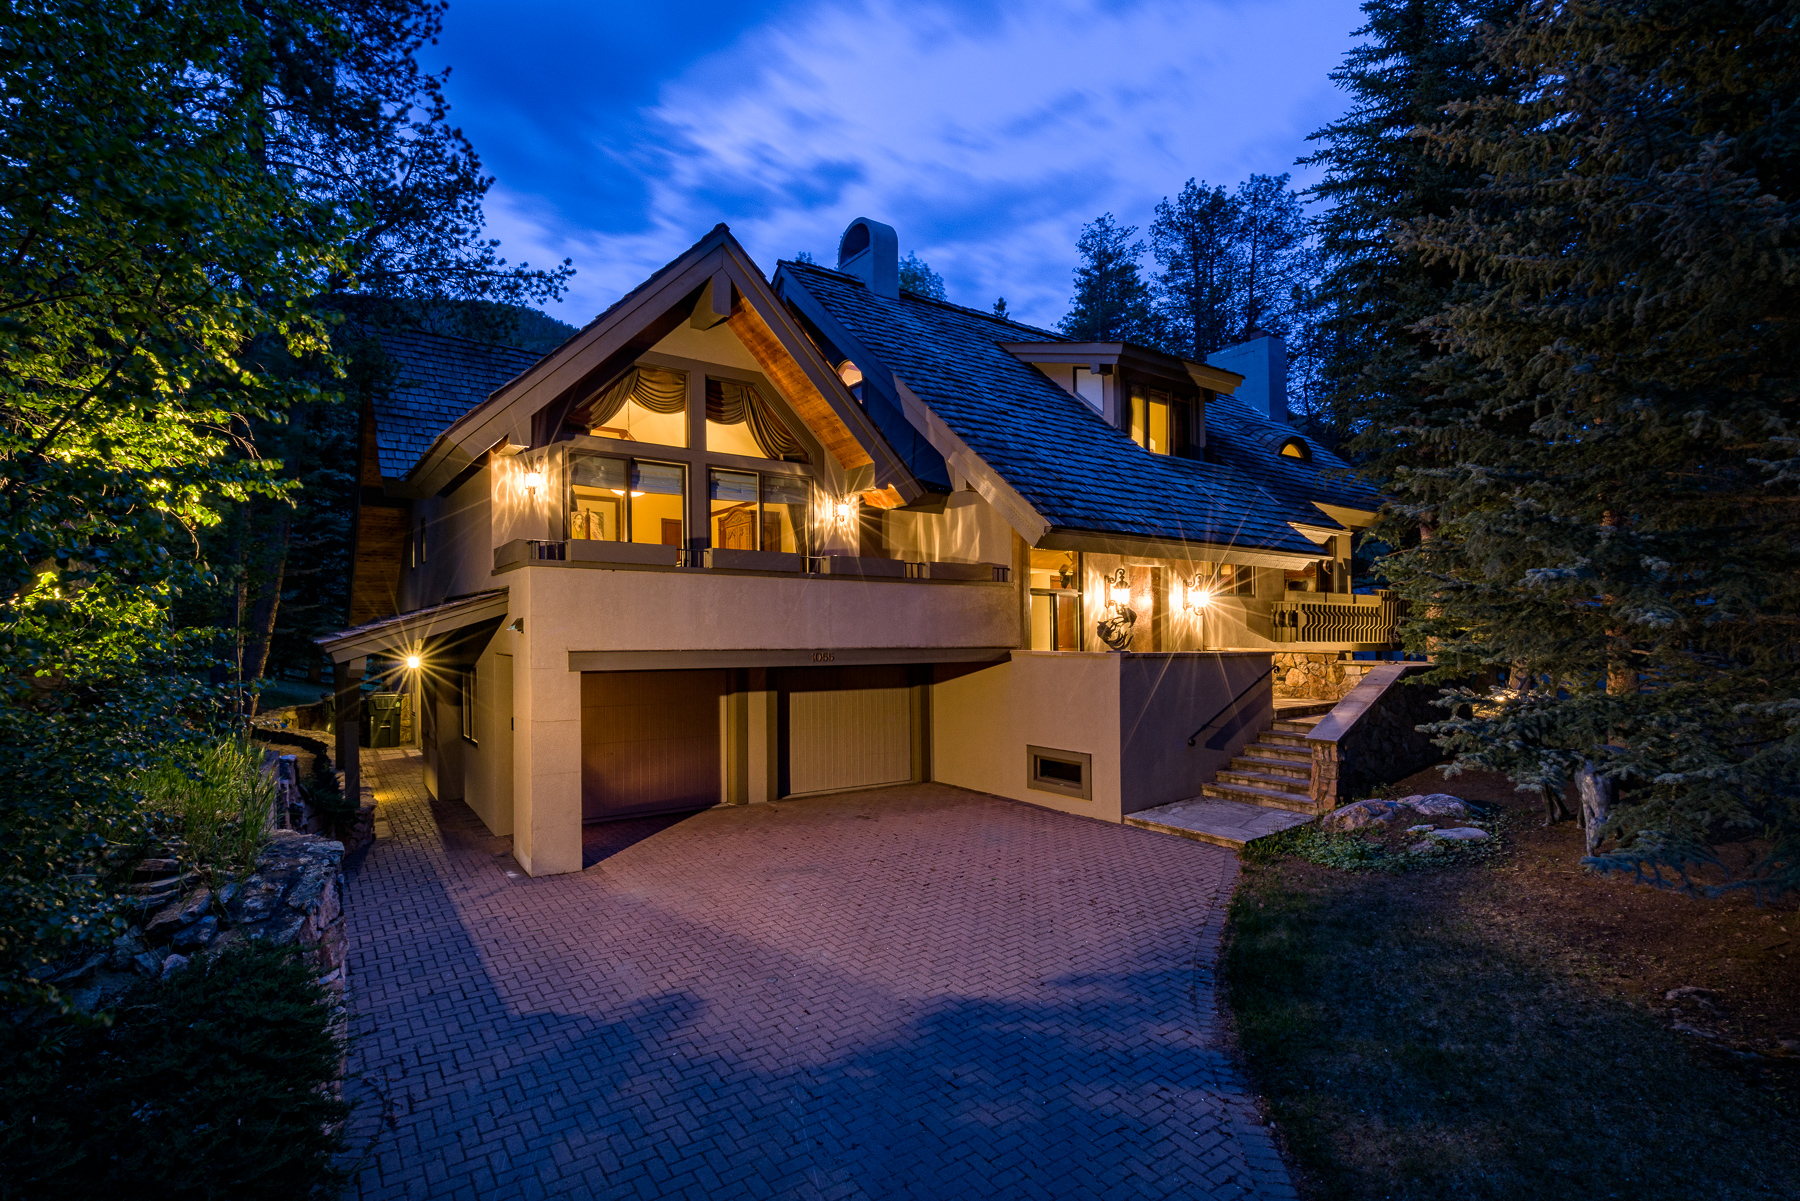 Casa Unifamiliar por un Venta en 1055 Homestake Circle Vail Golf Course, Vail, Colorado, 81657 Estados Unidos